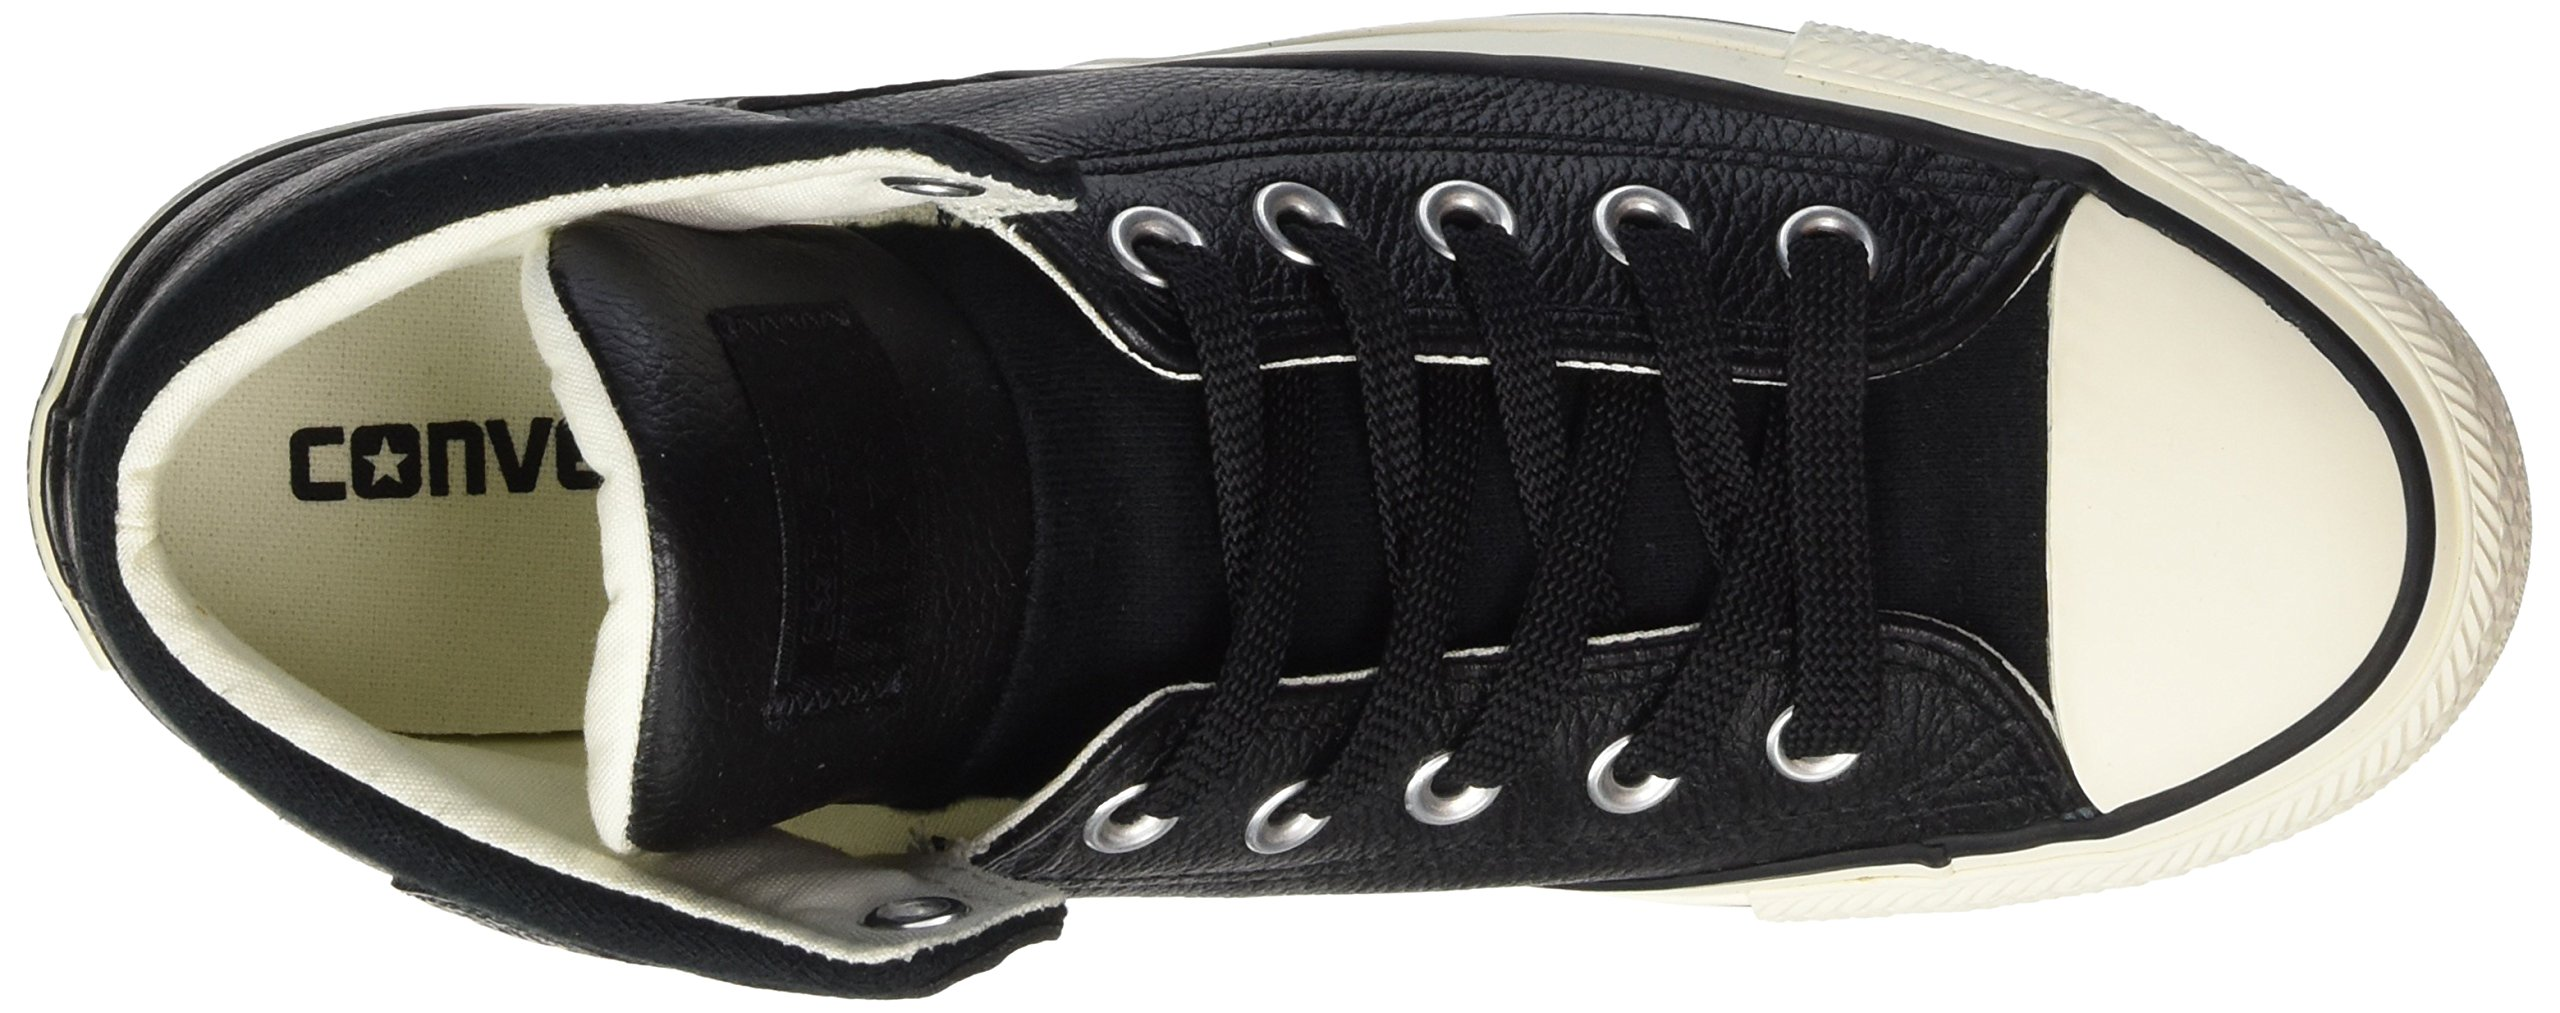 Converse Unisex Chuck Taylor All Star High Street Kurim Mid Sneaker Leather Black 10.5 D(M) US by Converse (Image #7)